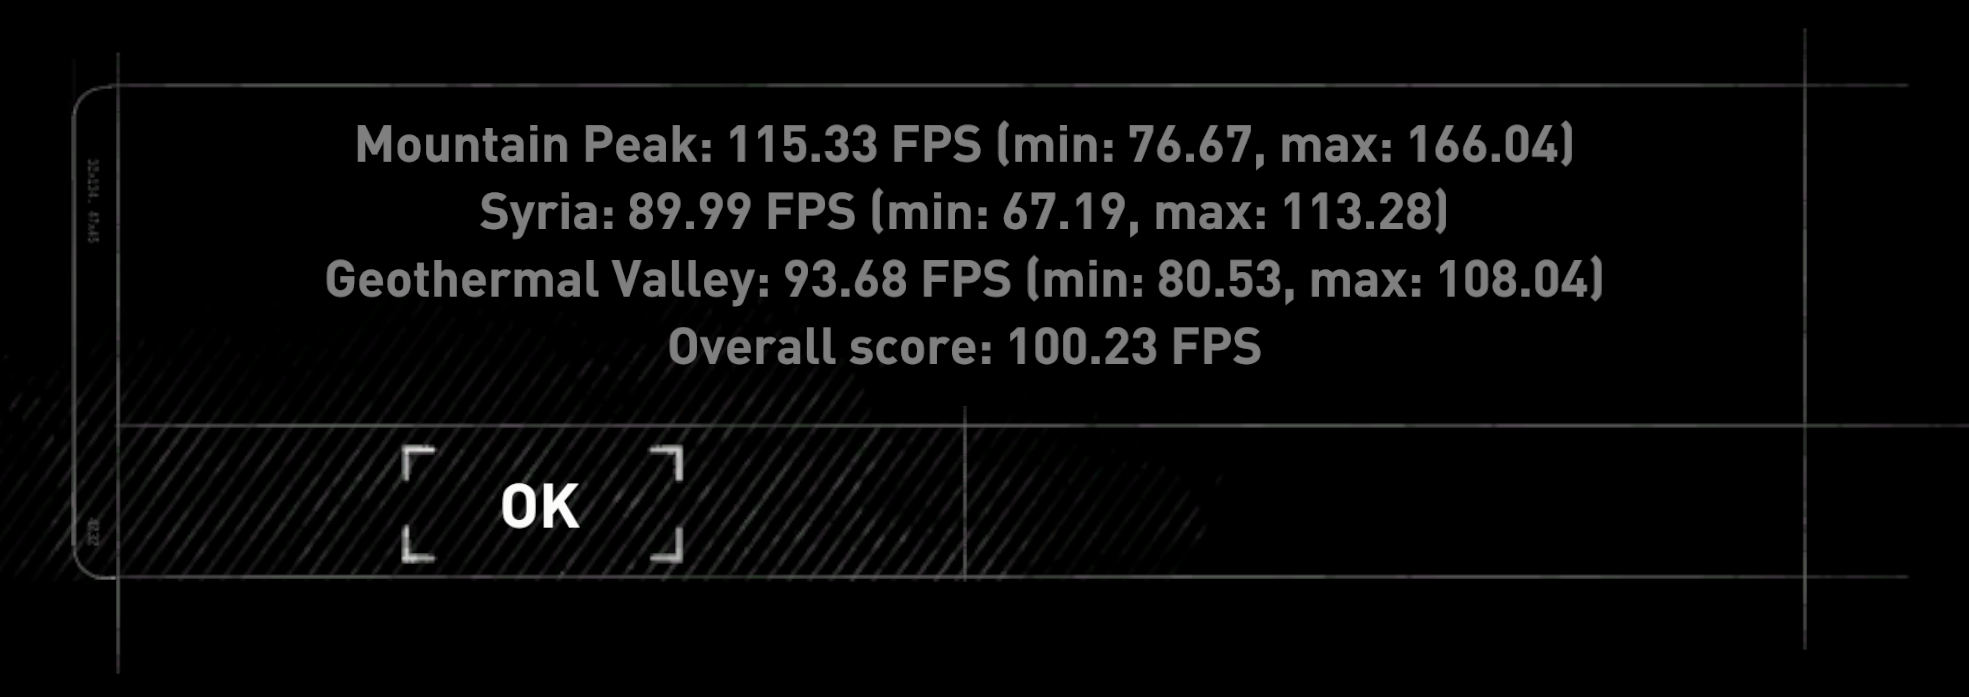 10700DGAME_11.png